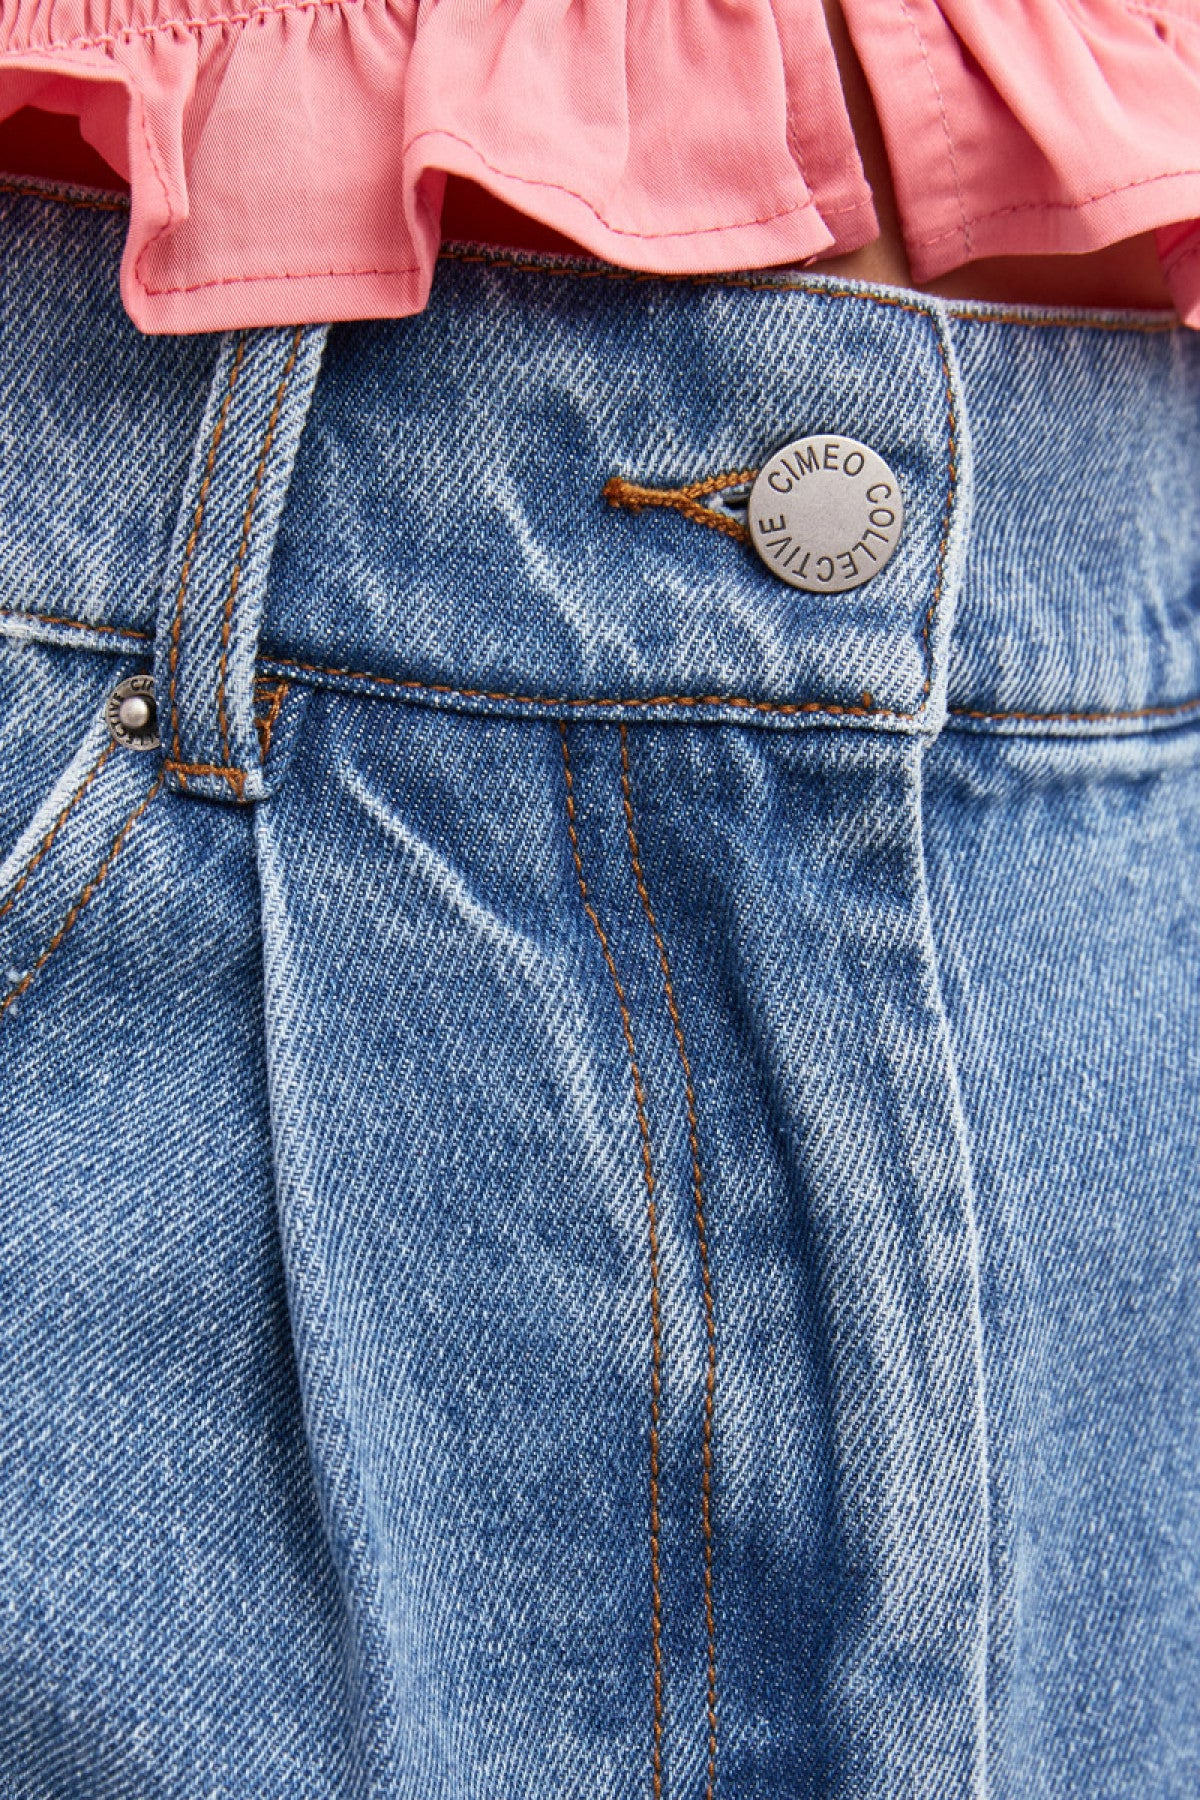 PERIPHERAL SHORT blue denim